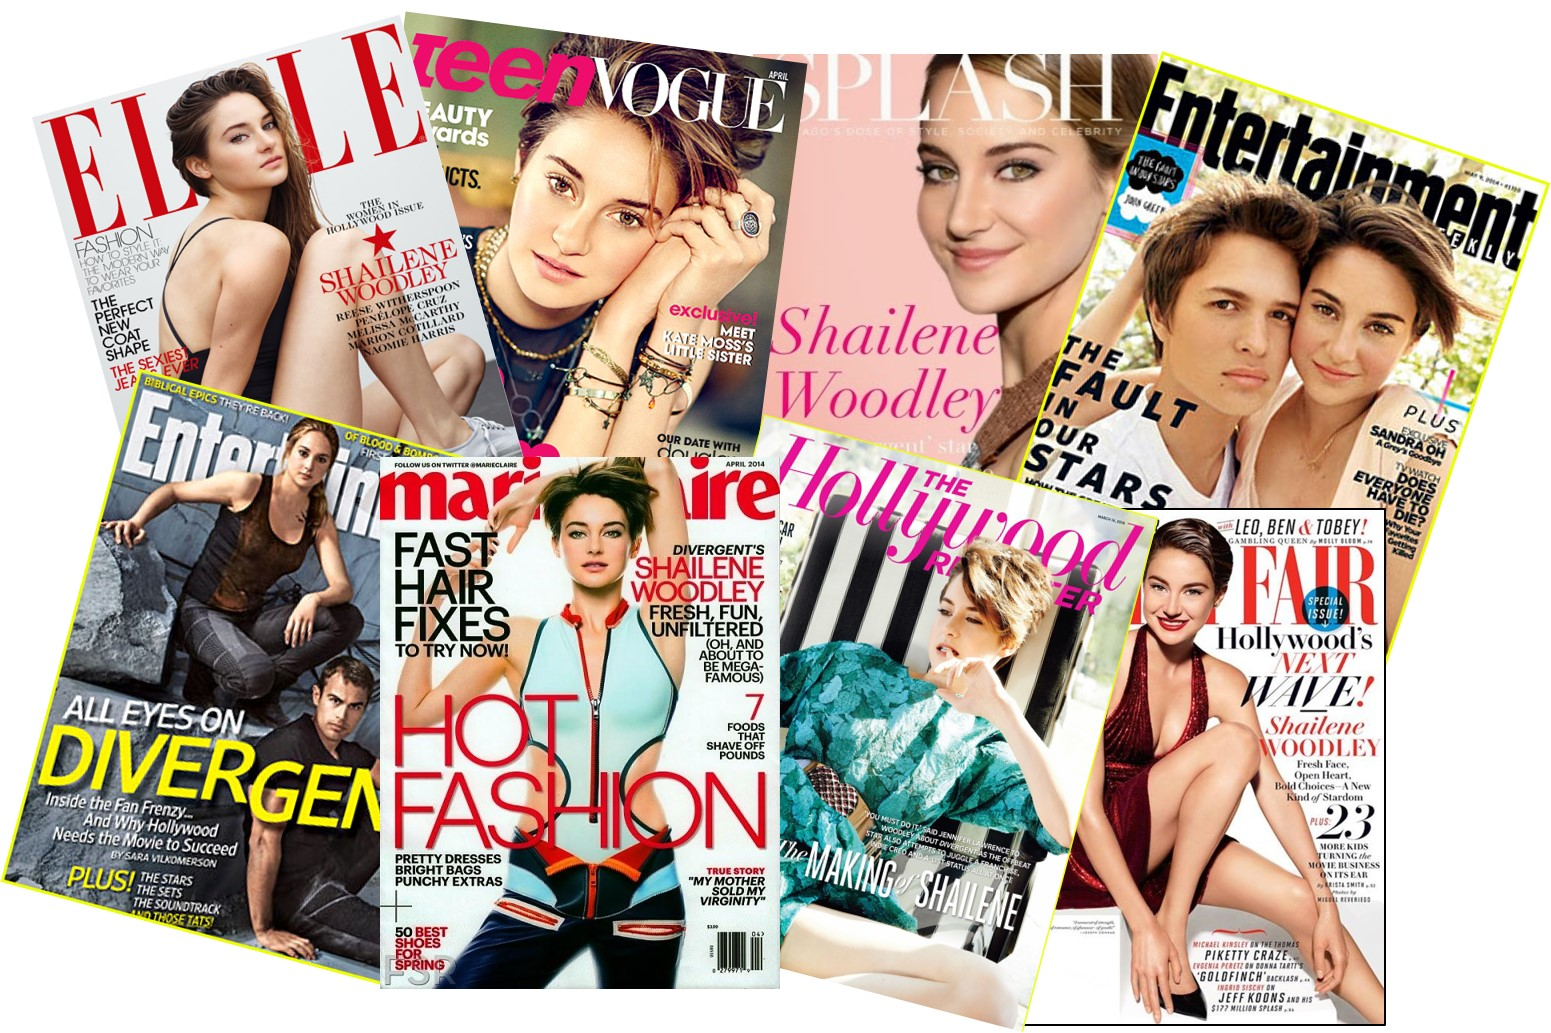 SHAILENE WOODLEY - Covers Magazines - Go with the Blog